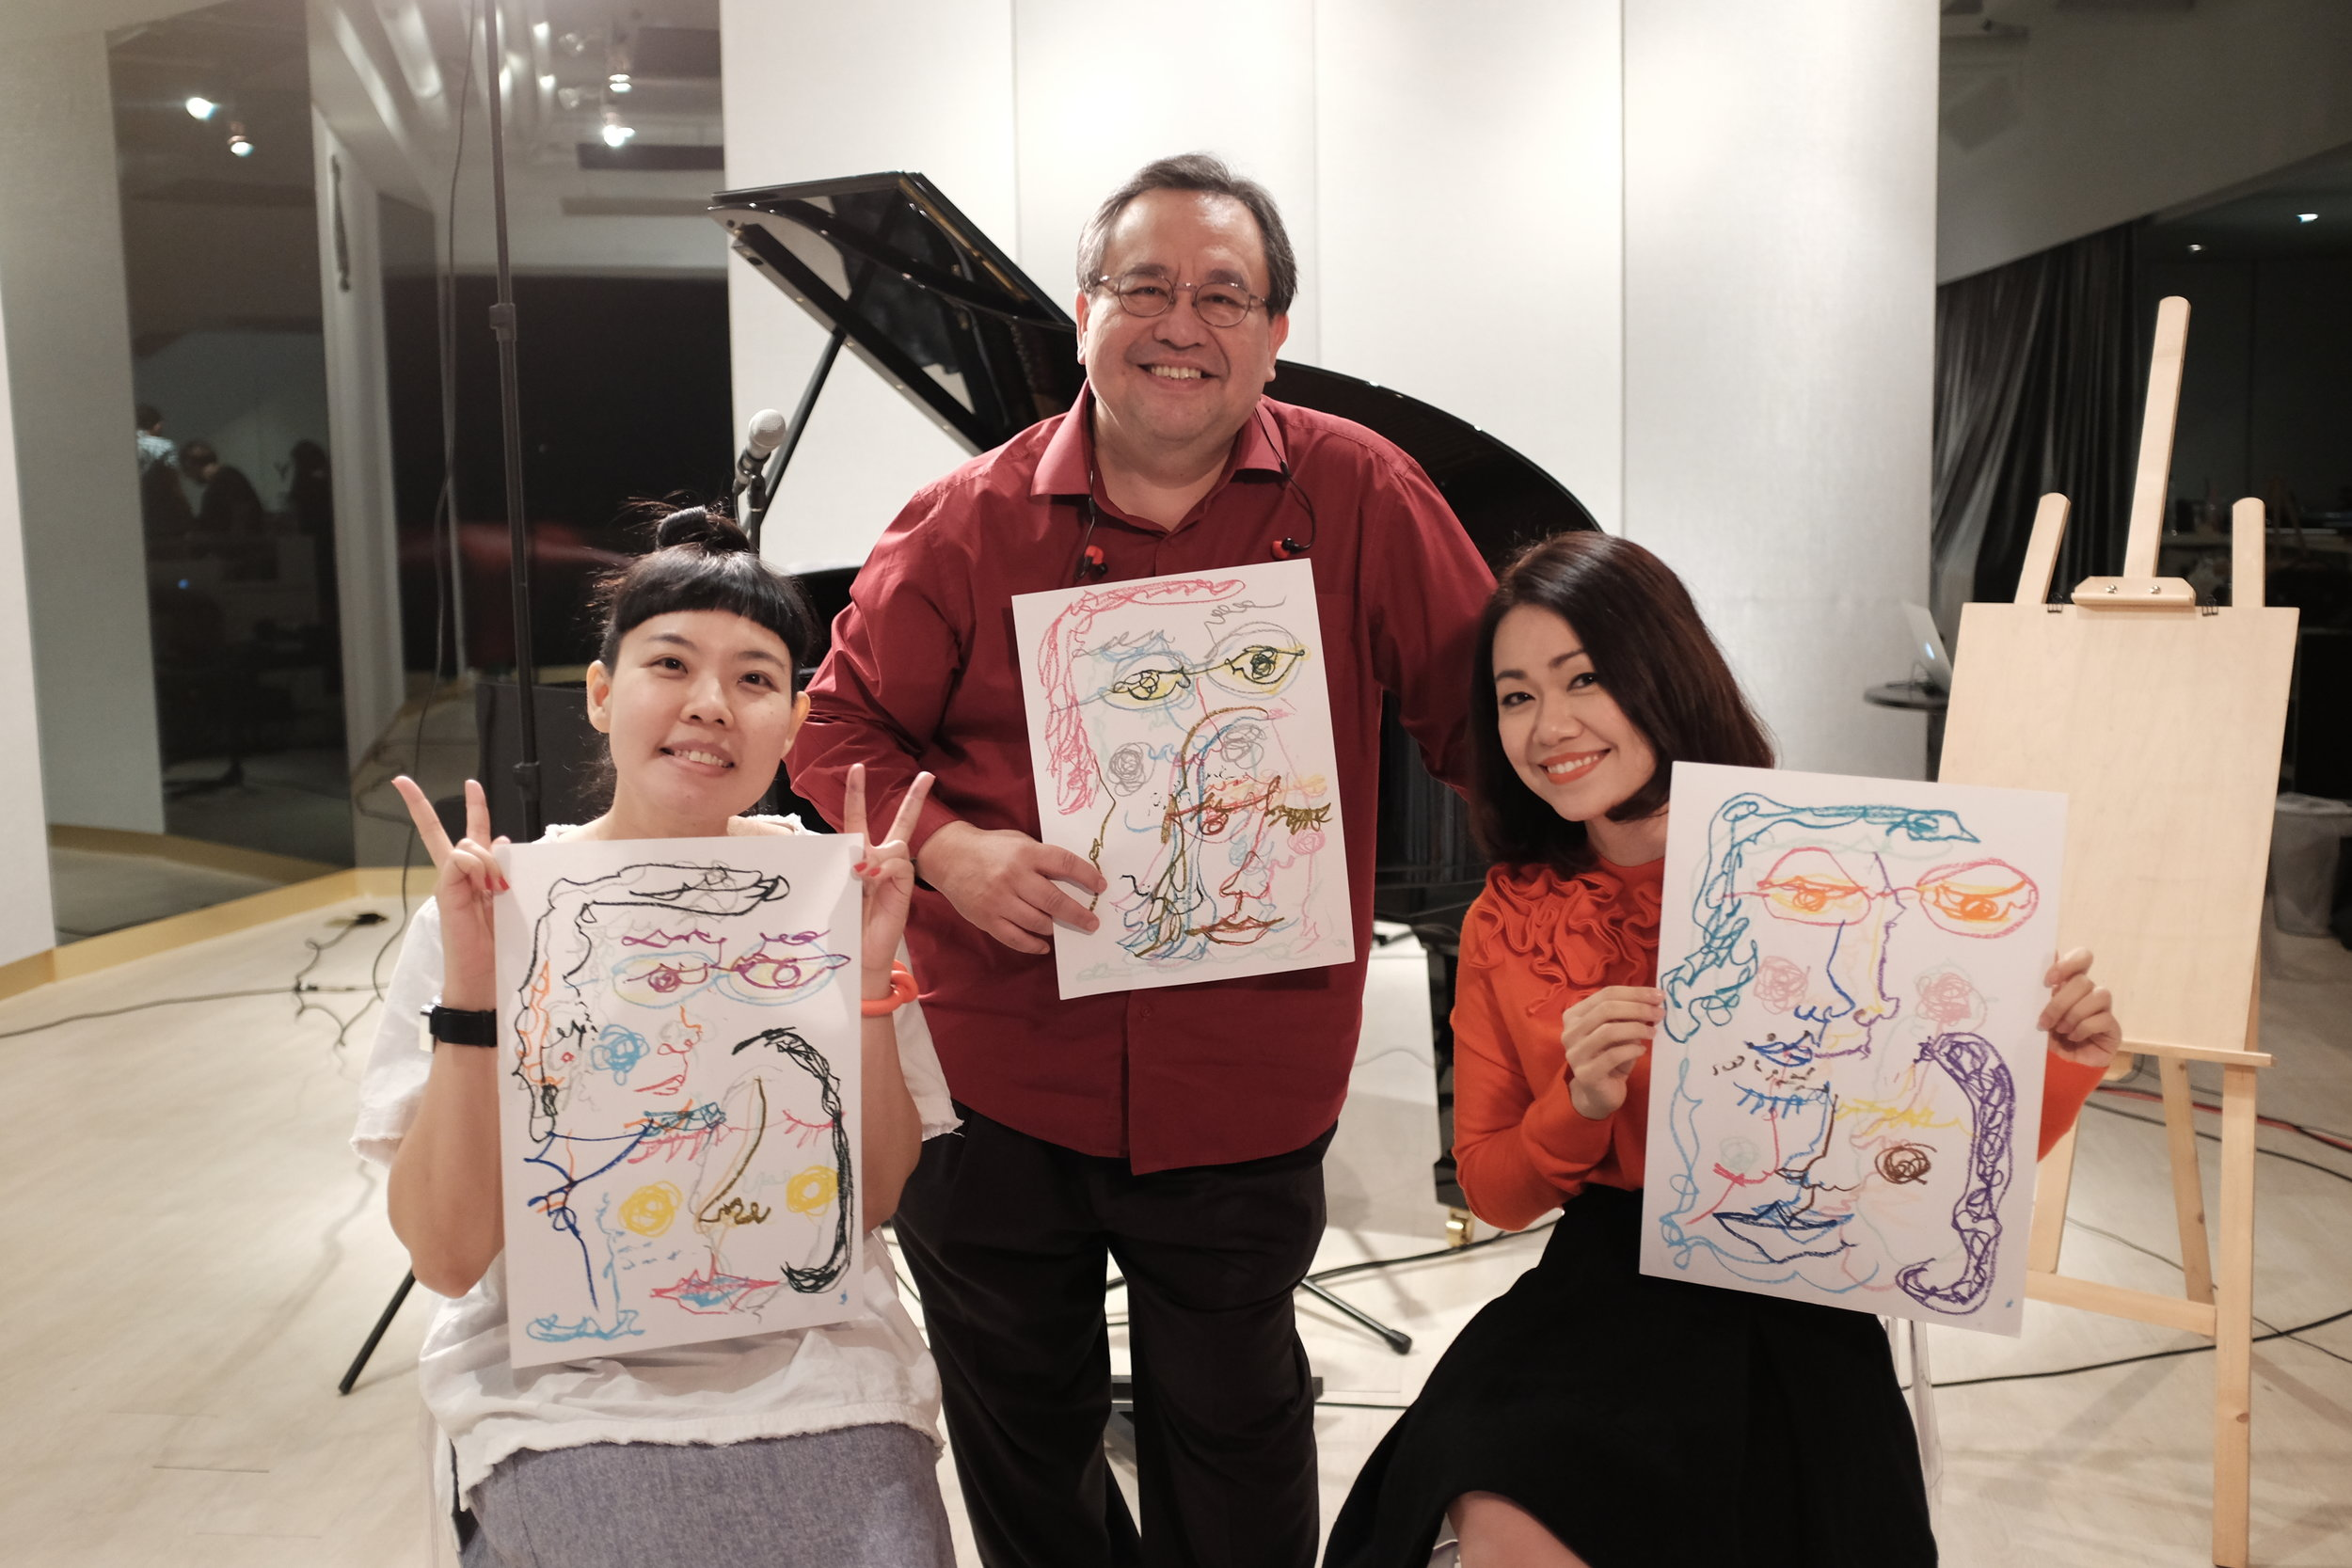 Pianist Jeremy monteiro (middle), singer joanna dong (right), and artist noreen loh (left). Photography by Nicholas tang.